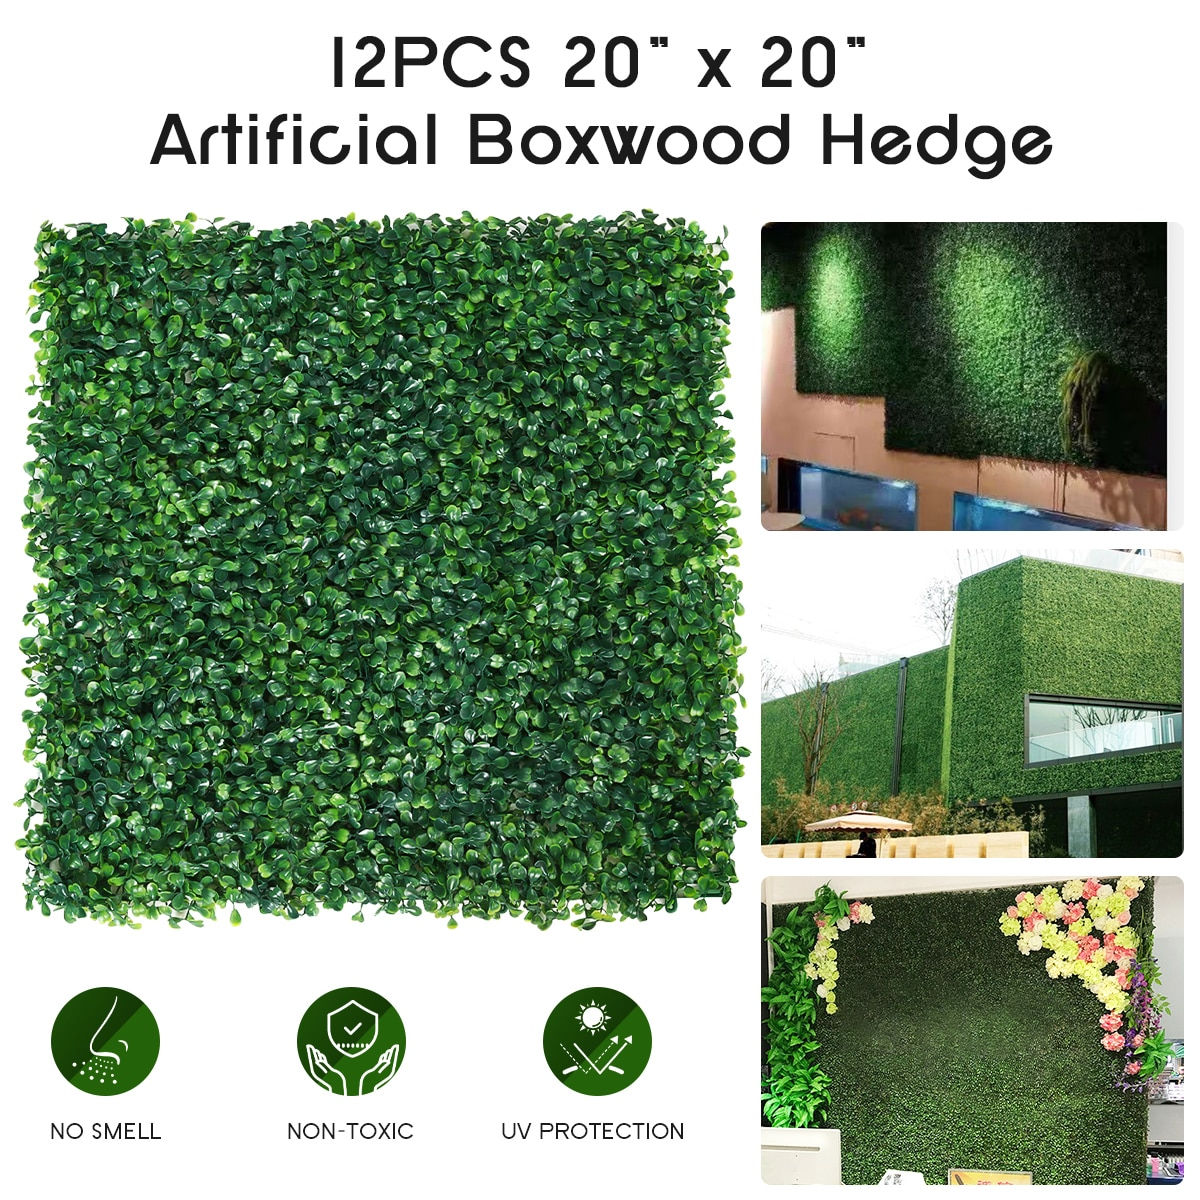 12PCS 20X20 Inch Artificial Boxwood Hedge Wall Panels Topiary Grass Wall Privacy Screen UV Protected Grass Wall Backdrop